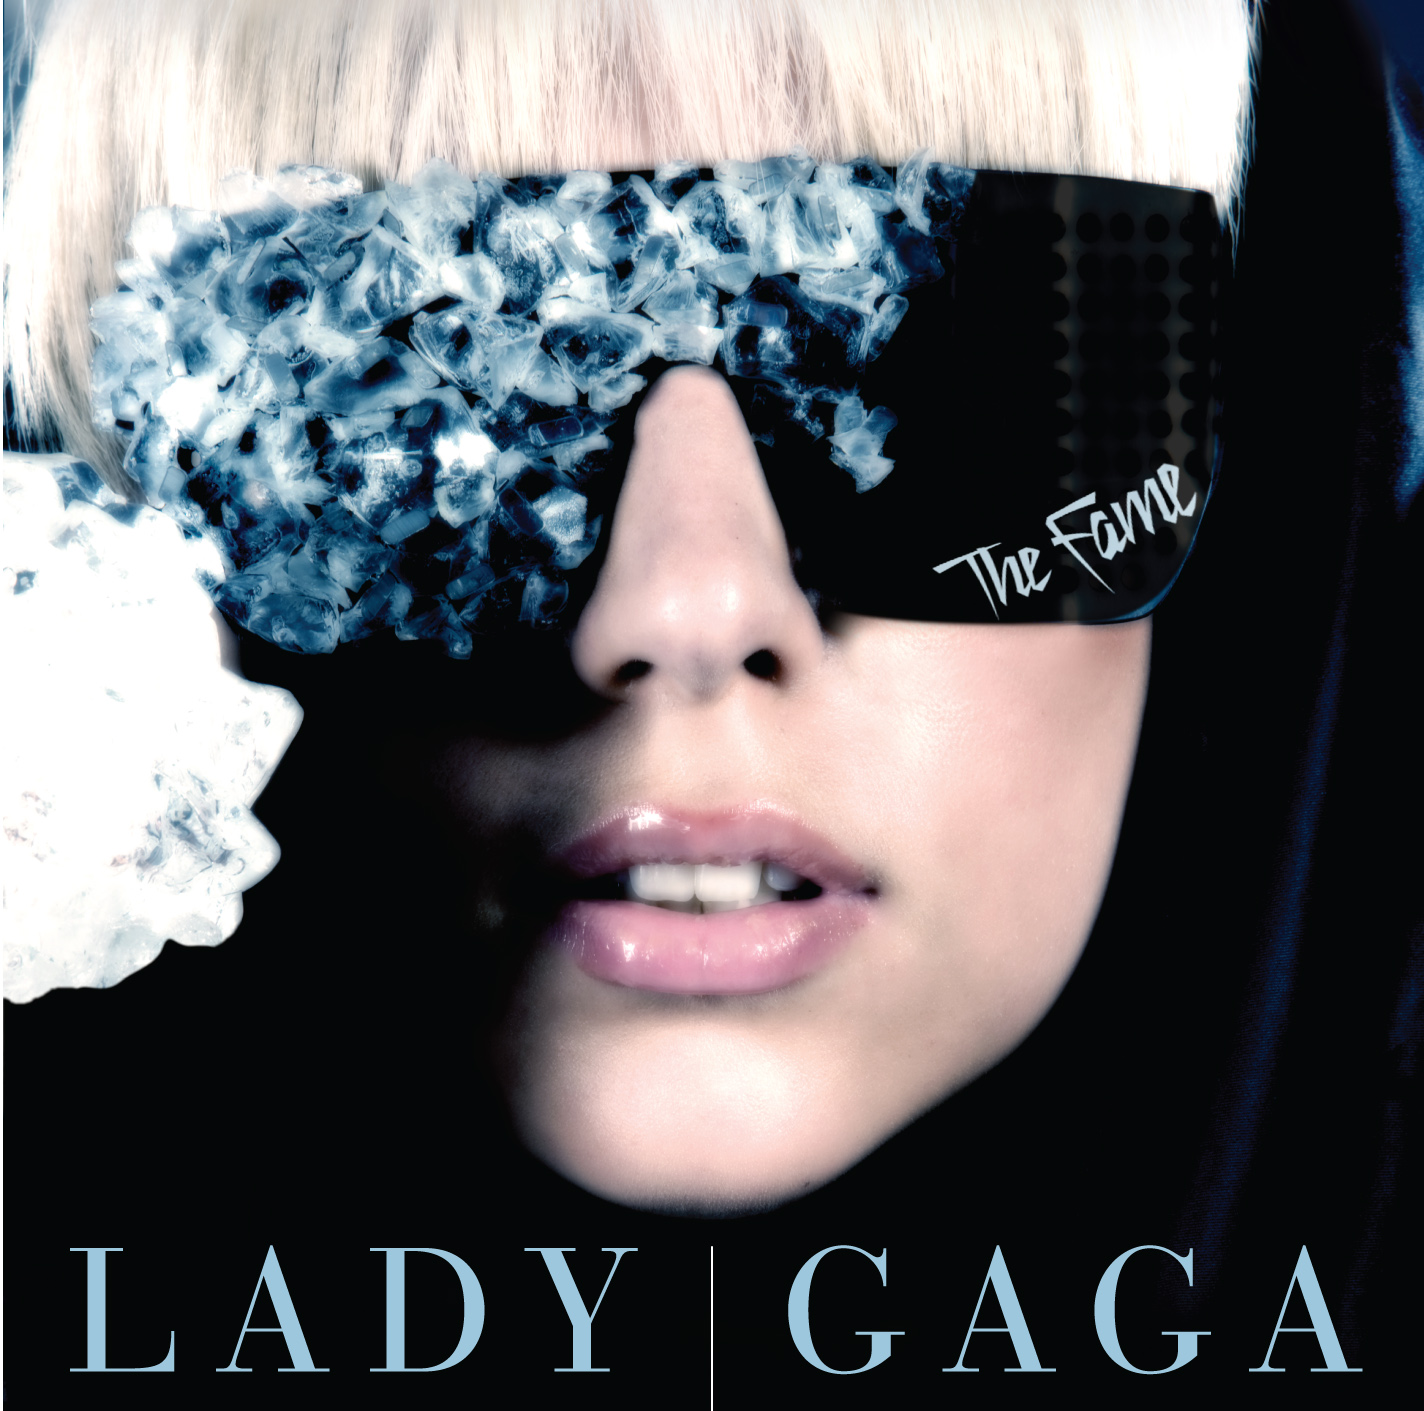 lady gaga fame  lyrics